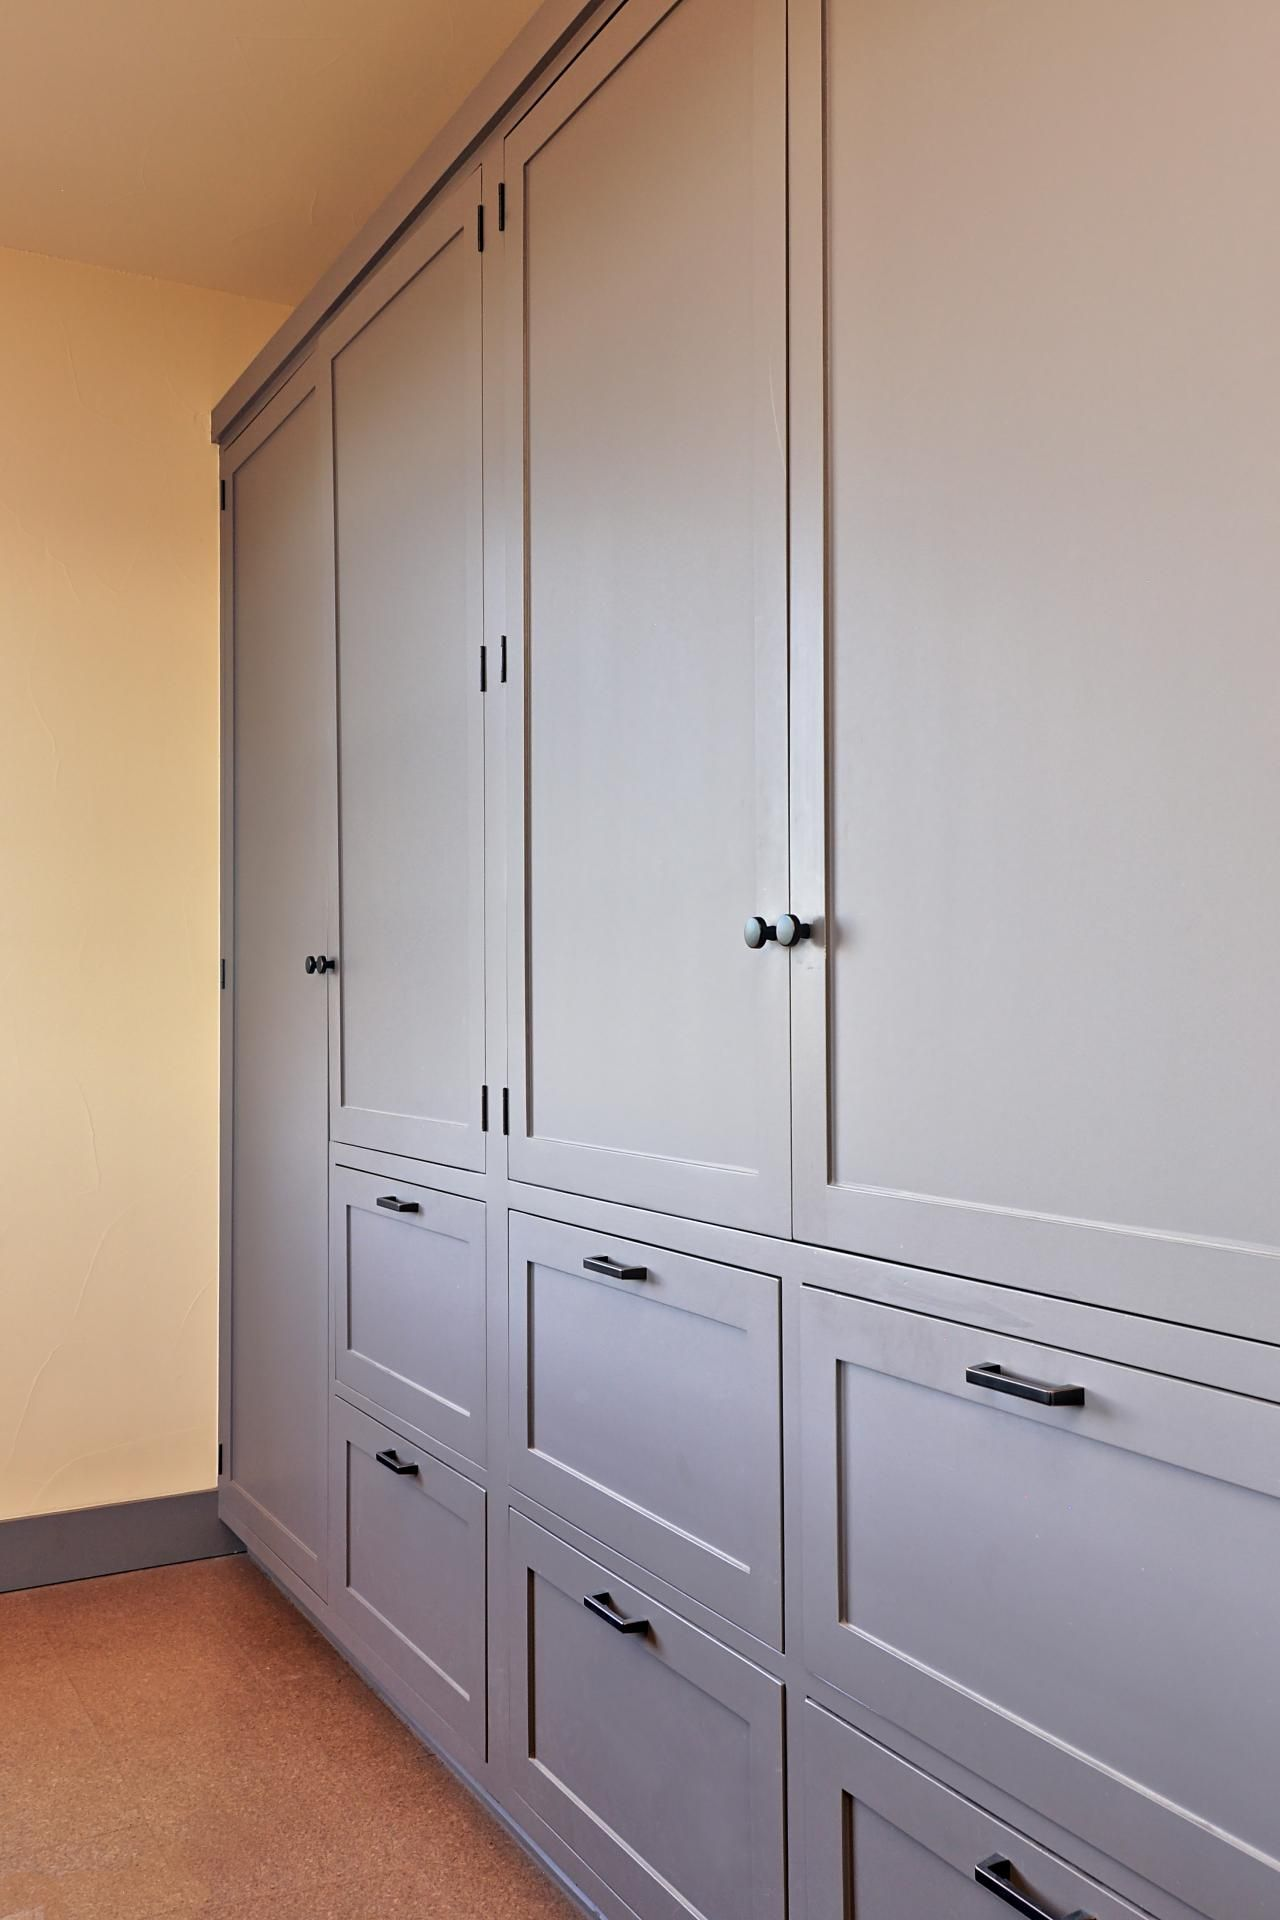 Built In Bedroom Storage Cabinets Hgtv Bedroom Ideas